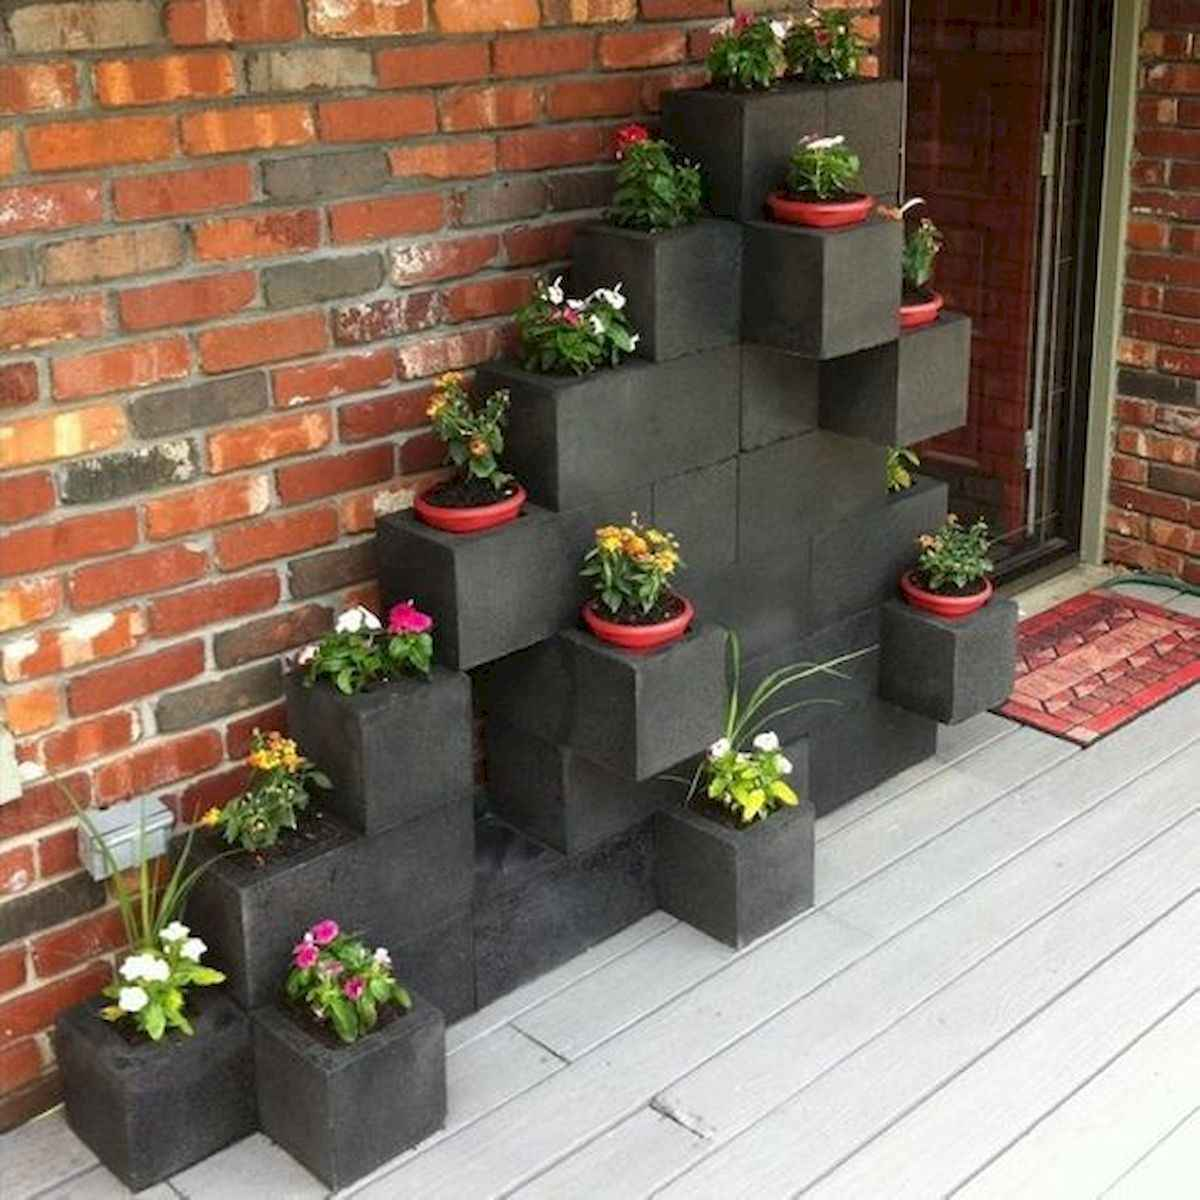 80 Awesome Spring Garden Ideas for Front Yard and Backyard (62)